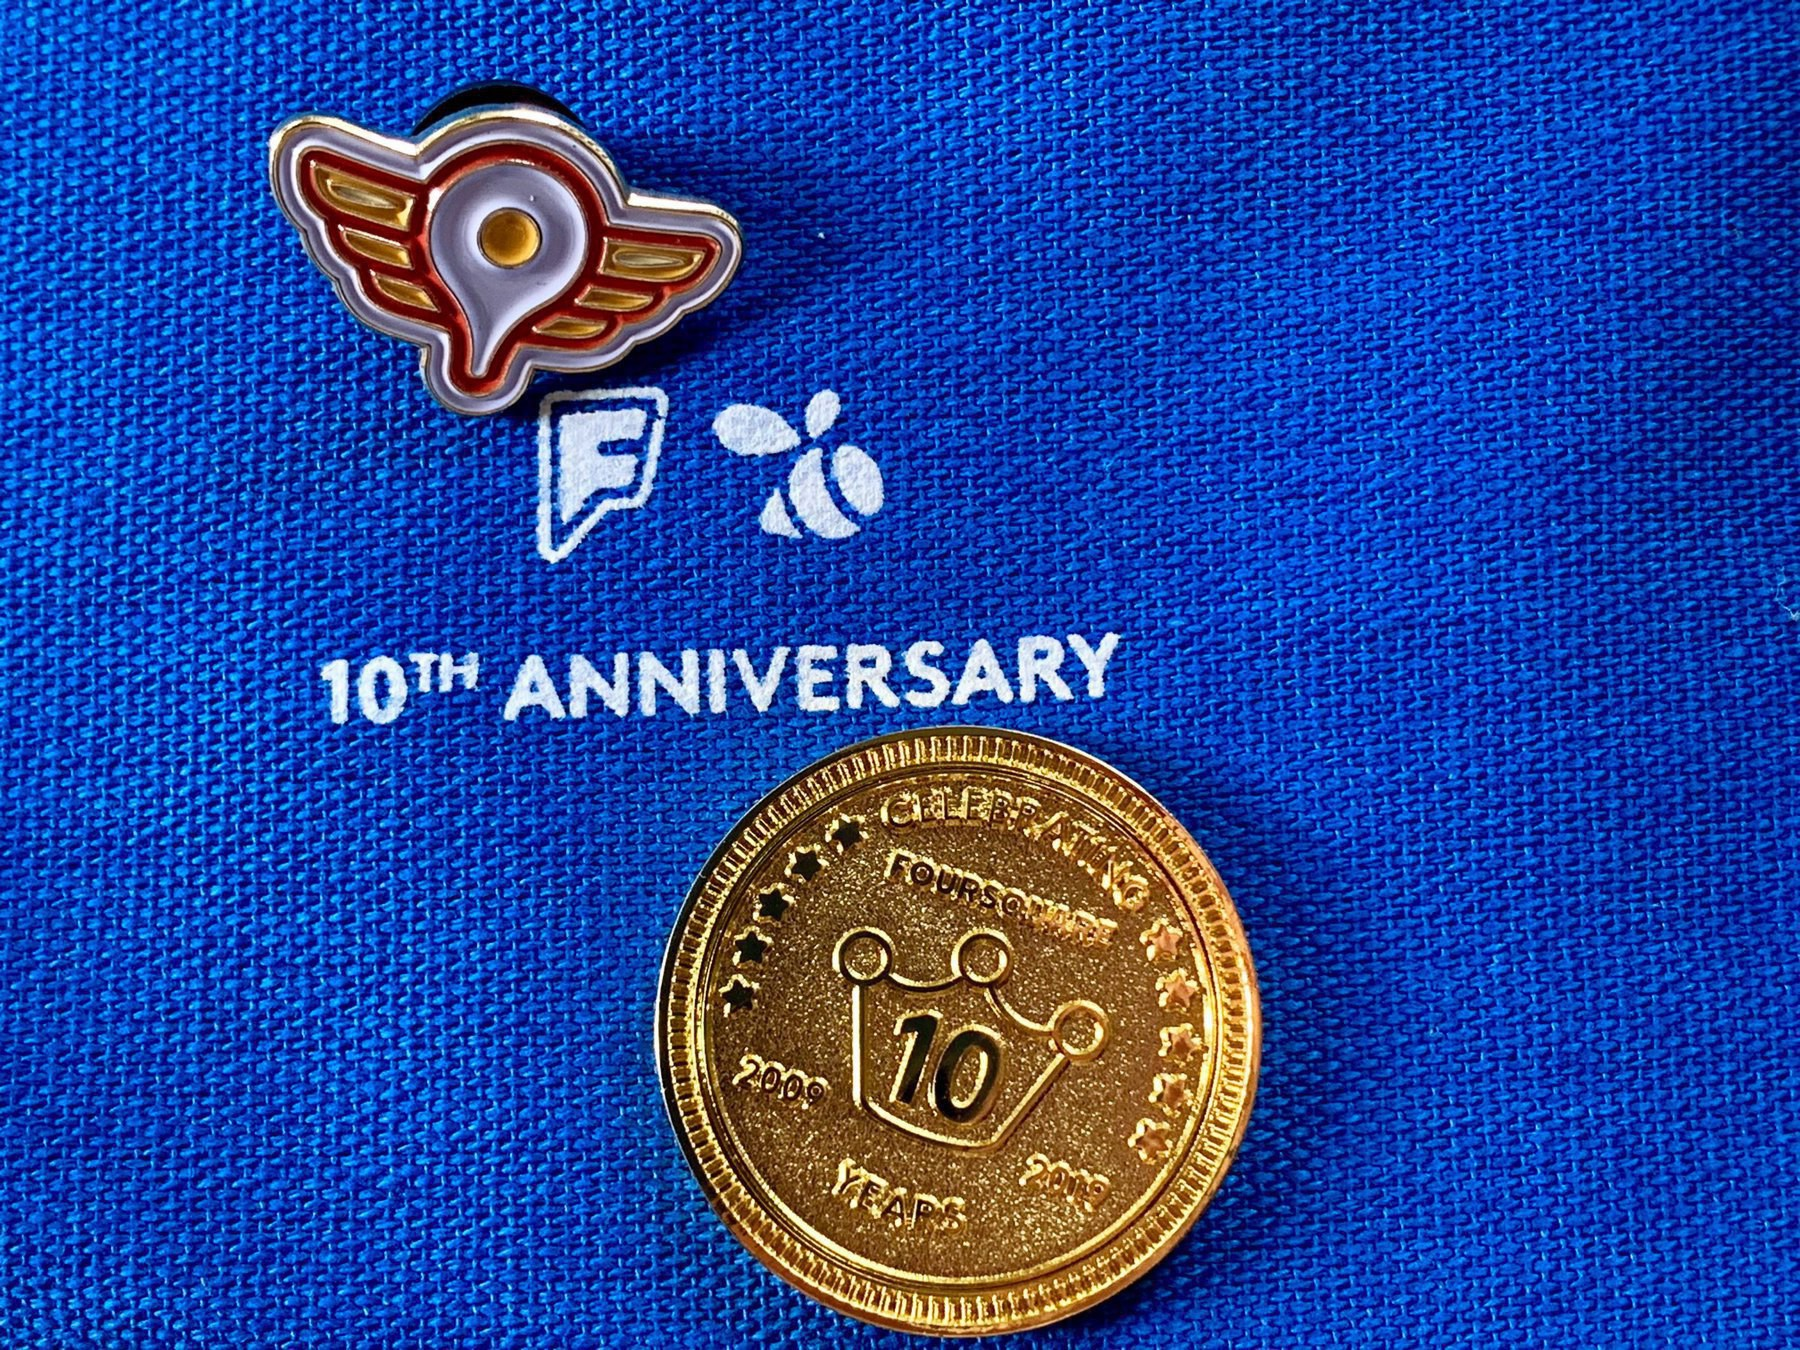 Foursquare 10th anniversary coin and superuser pin